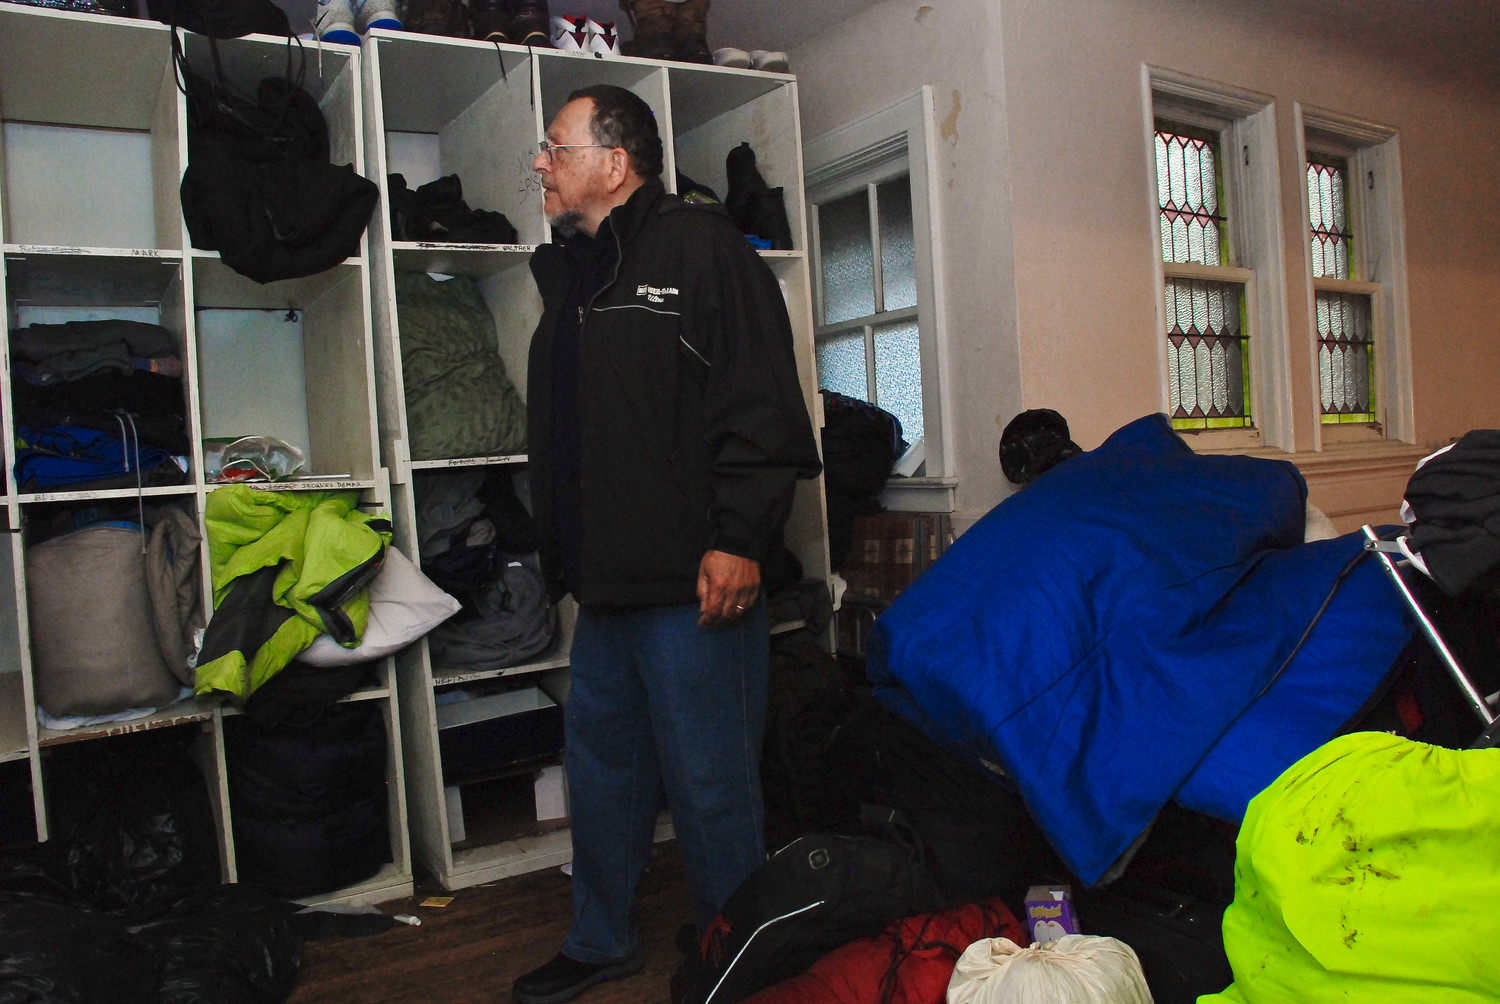 George, a member of the staff at the North Shore Sheltering Program, amid the cubbies where homeless men who spend their winter nights at the First Presbyterian Church keep their belongings during the day.